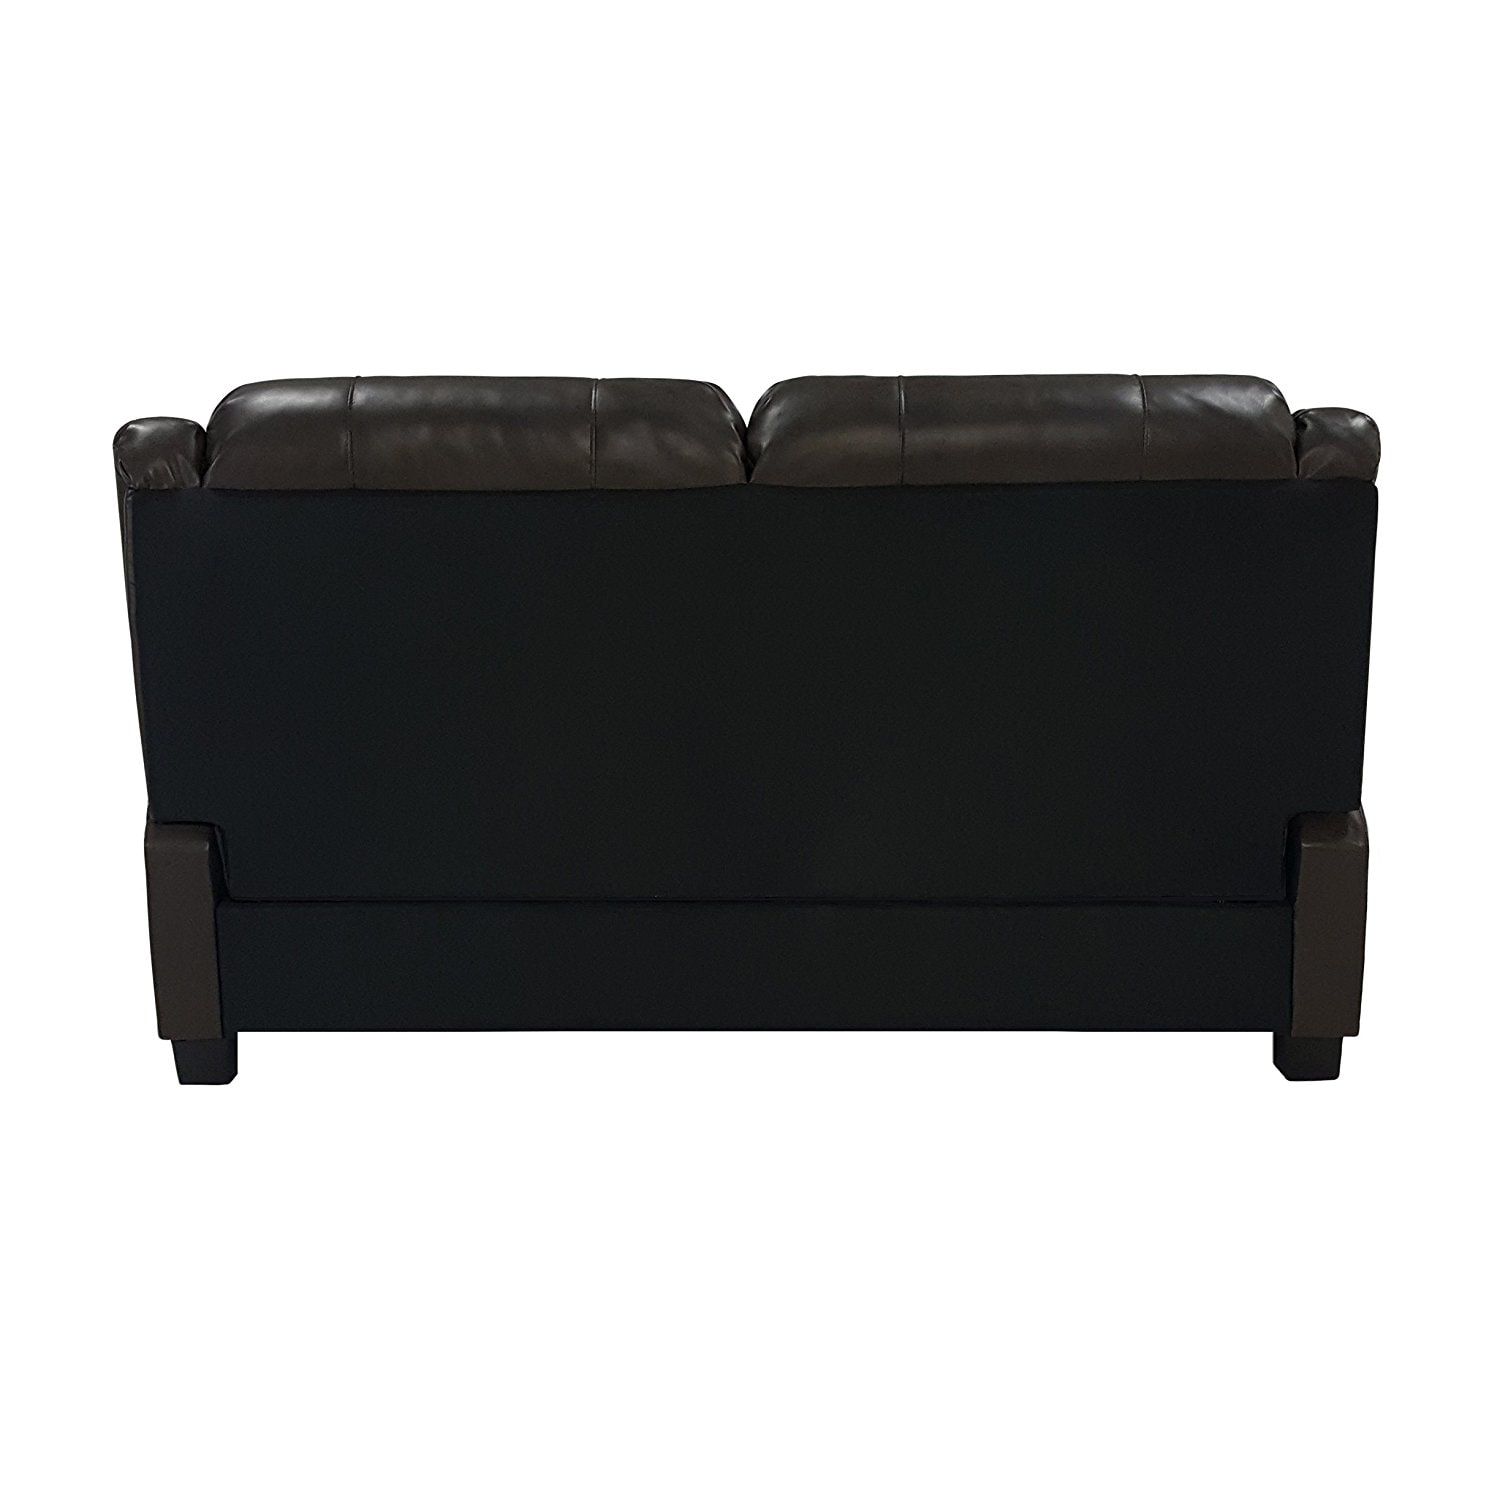 65 Quot Rv Sofa Sleeper W Hide A Bed Loveseat Charcoal